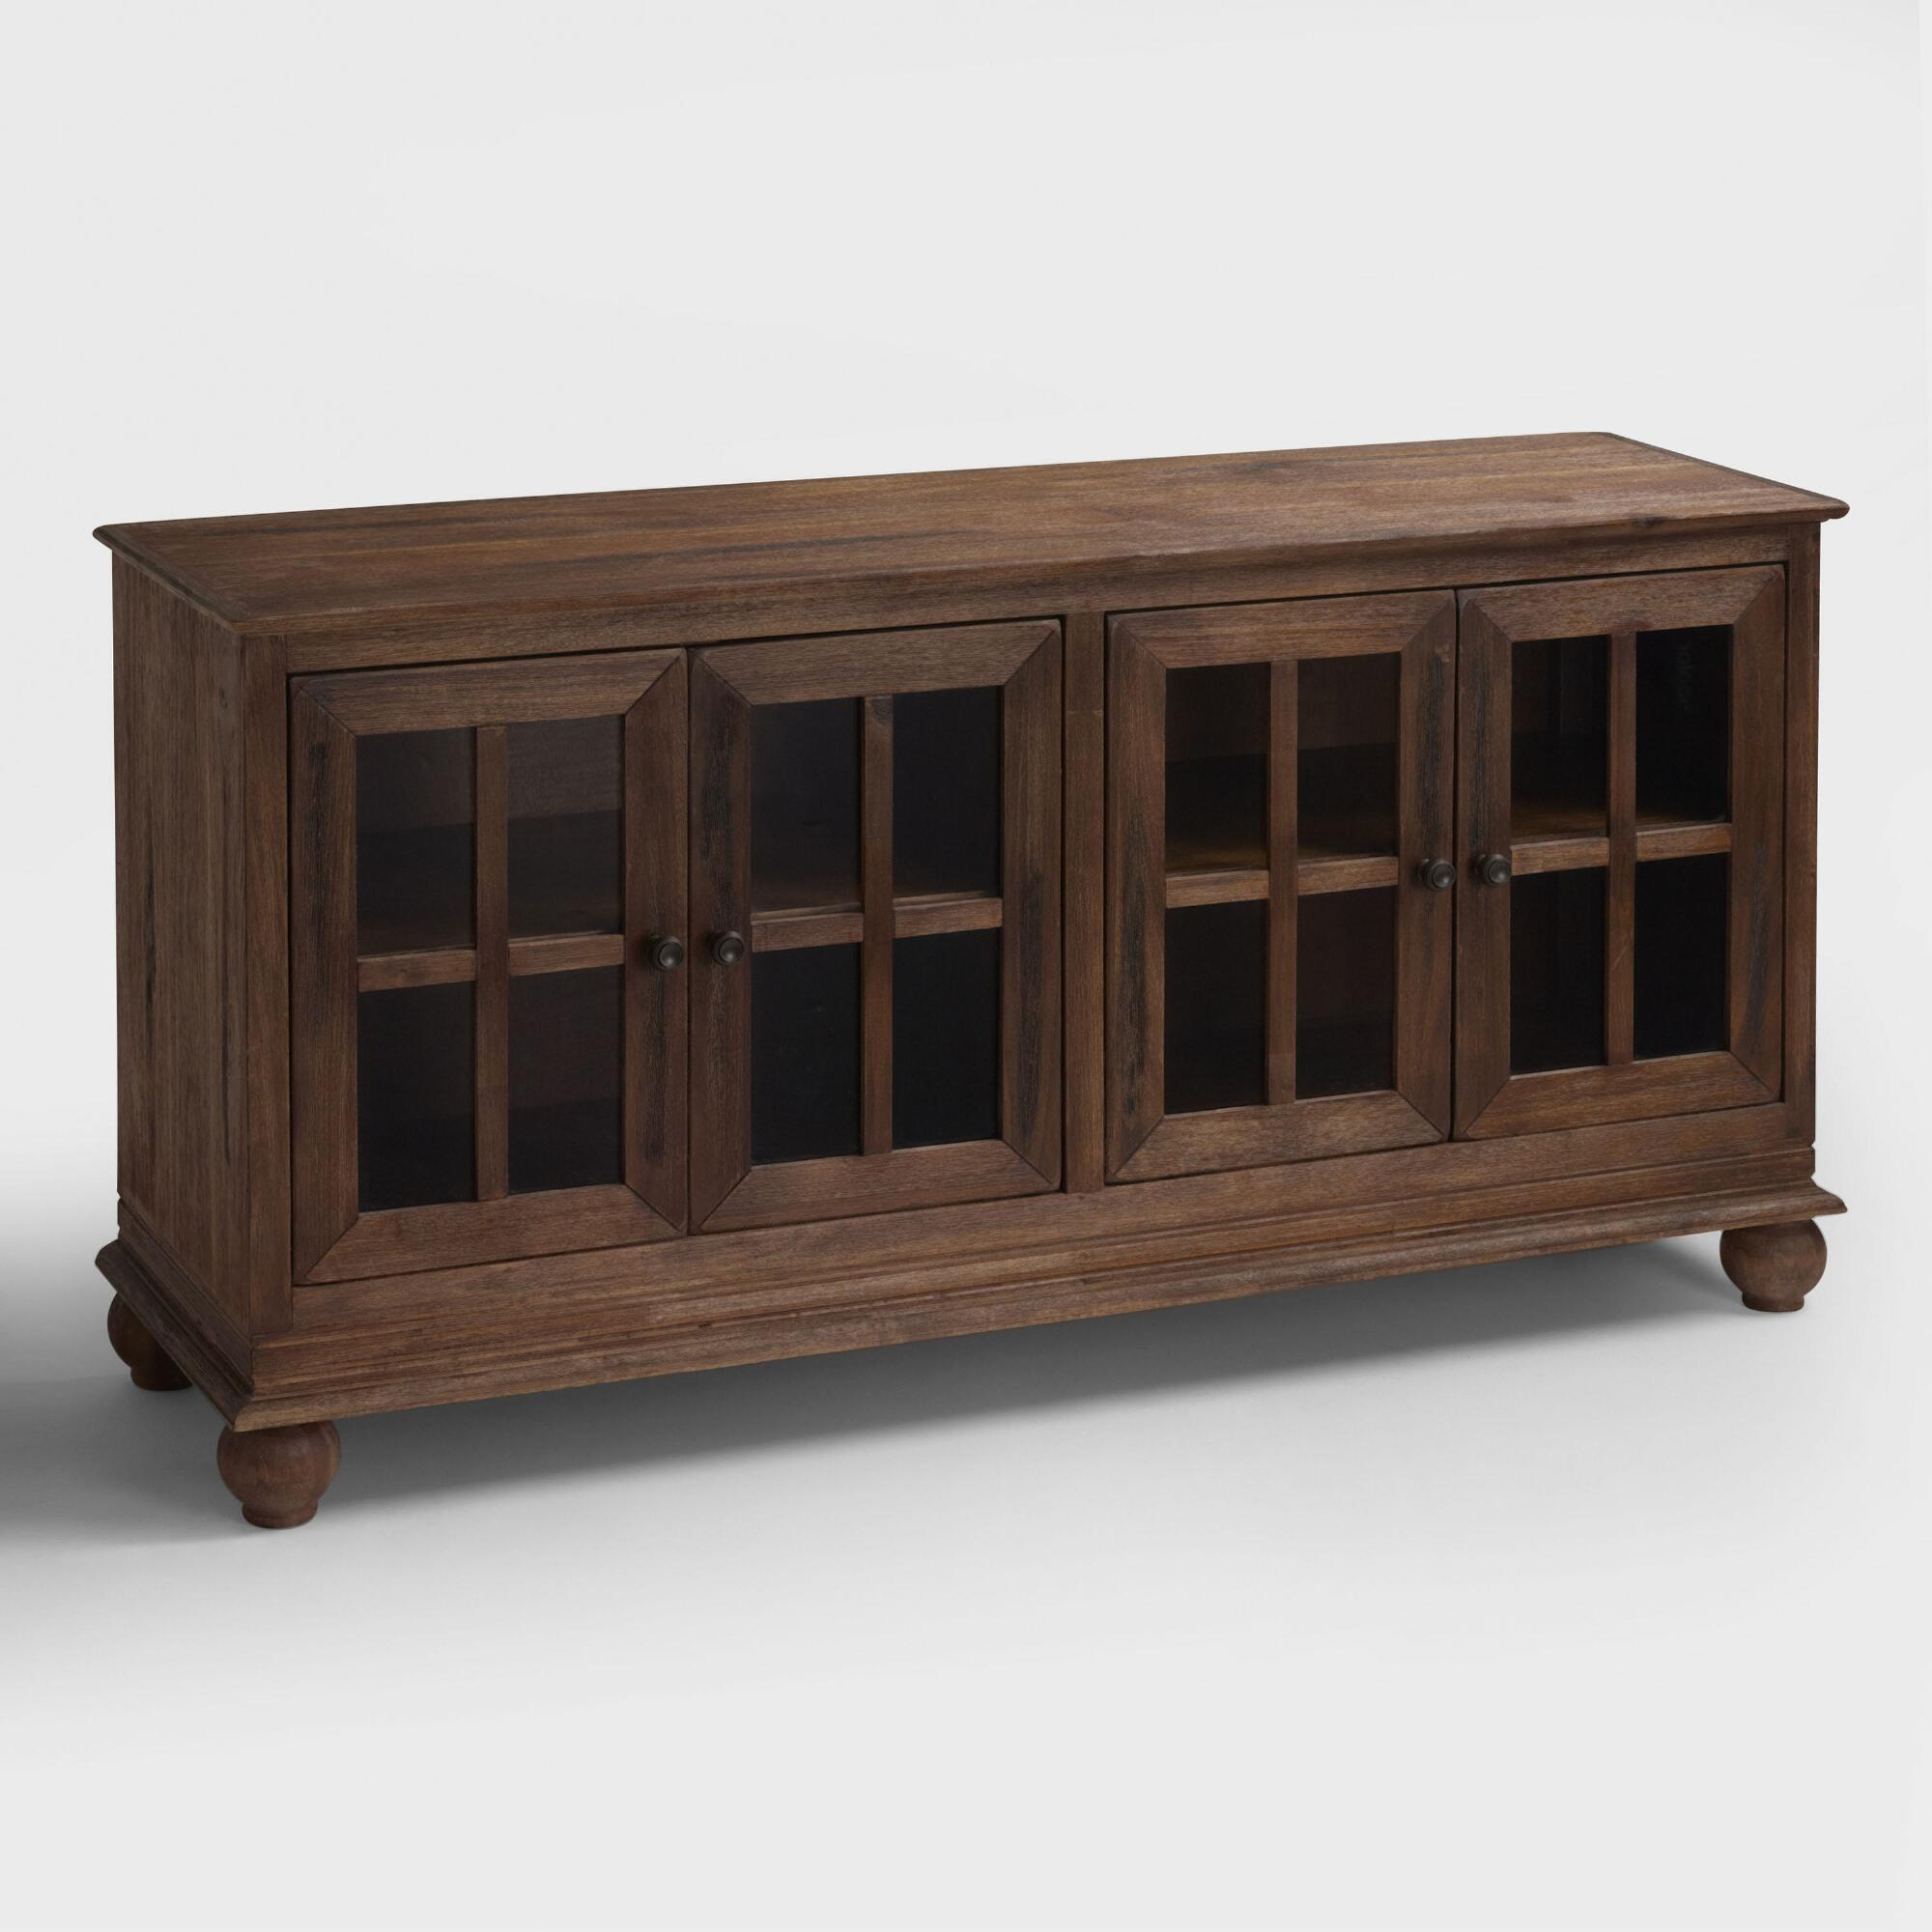 Low Glass Cabinet Display Cabinets Rustic Bookcases Shelves World Market